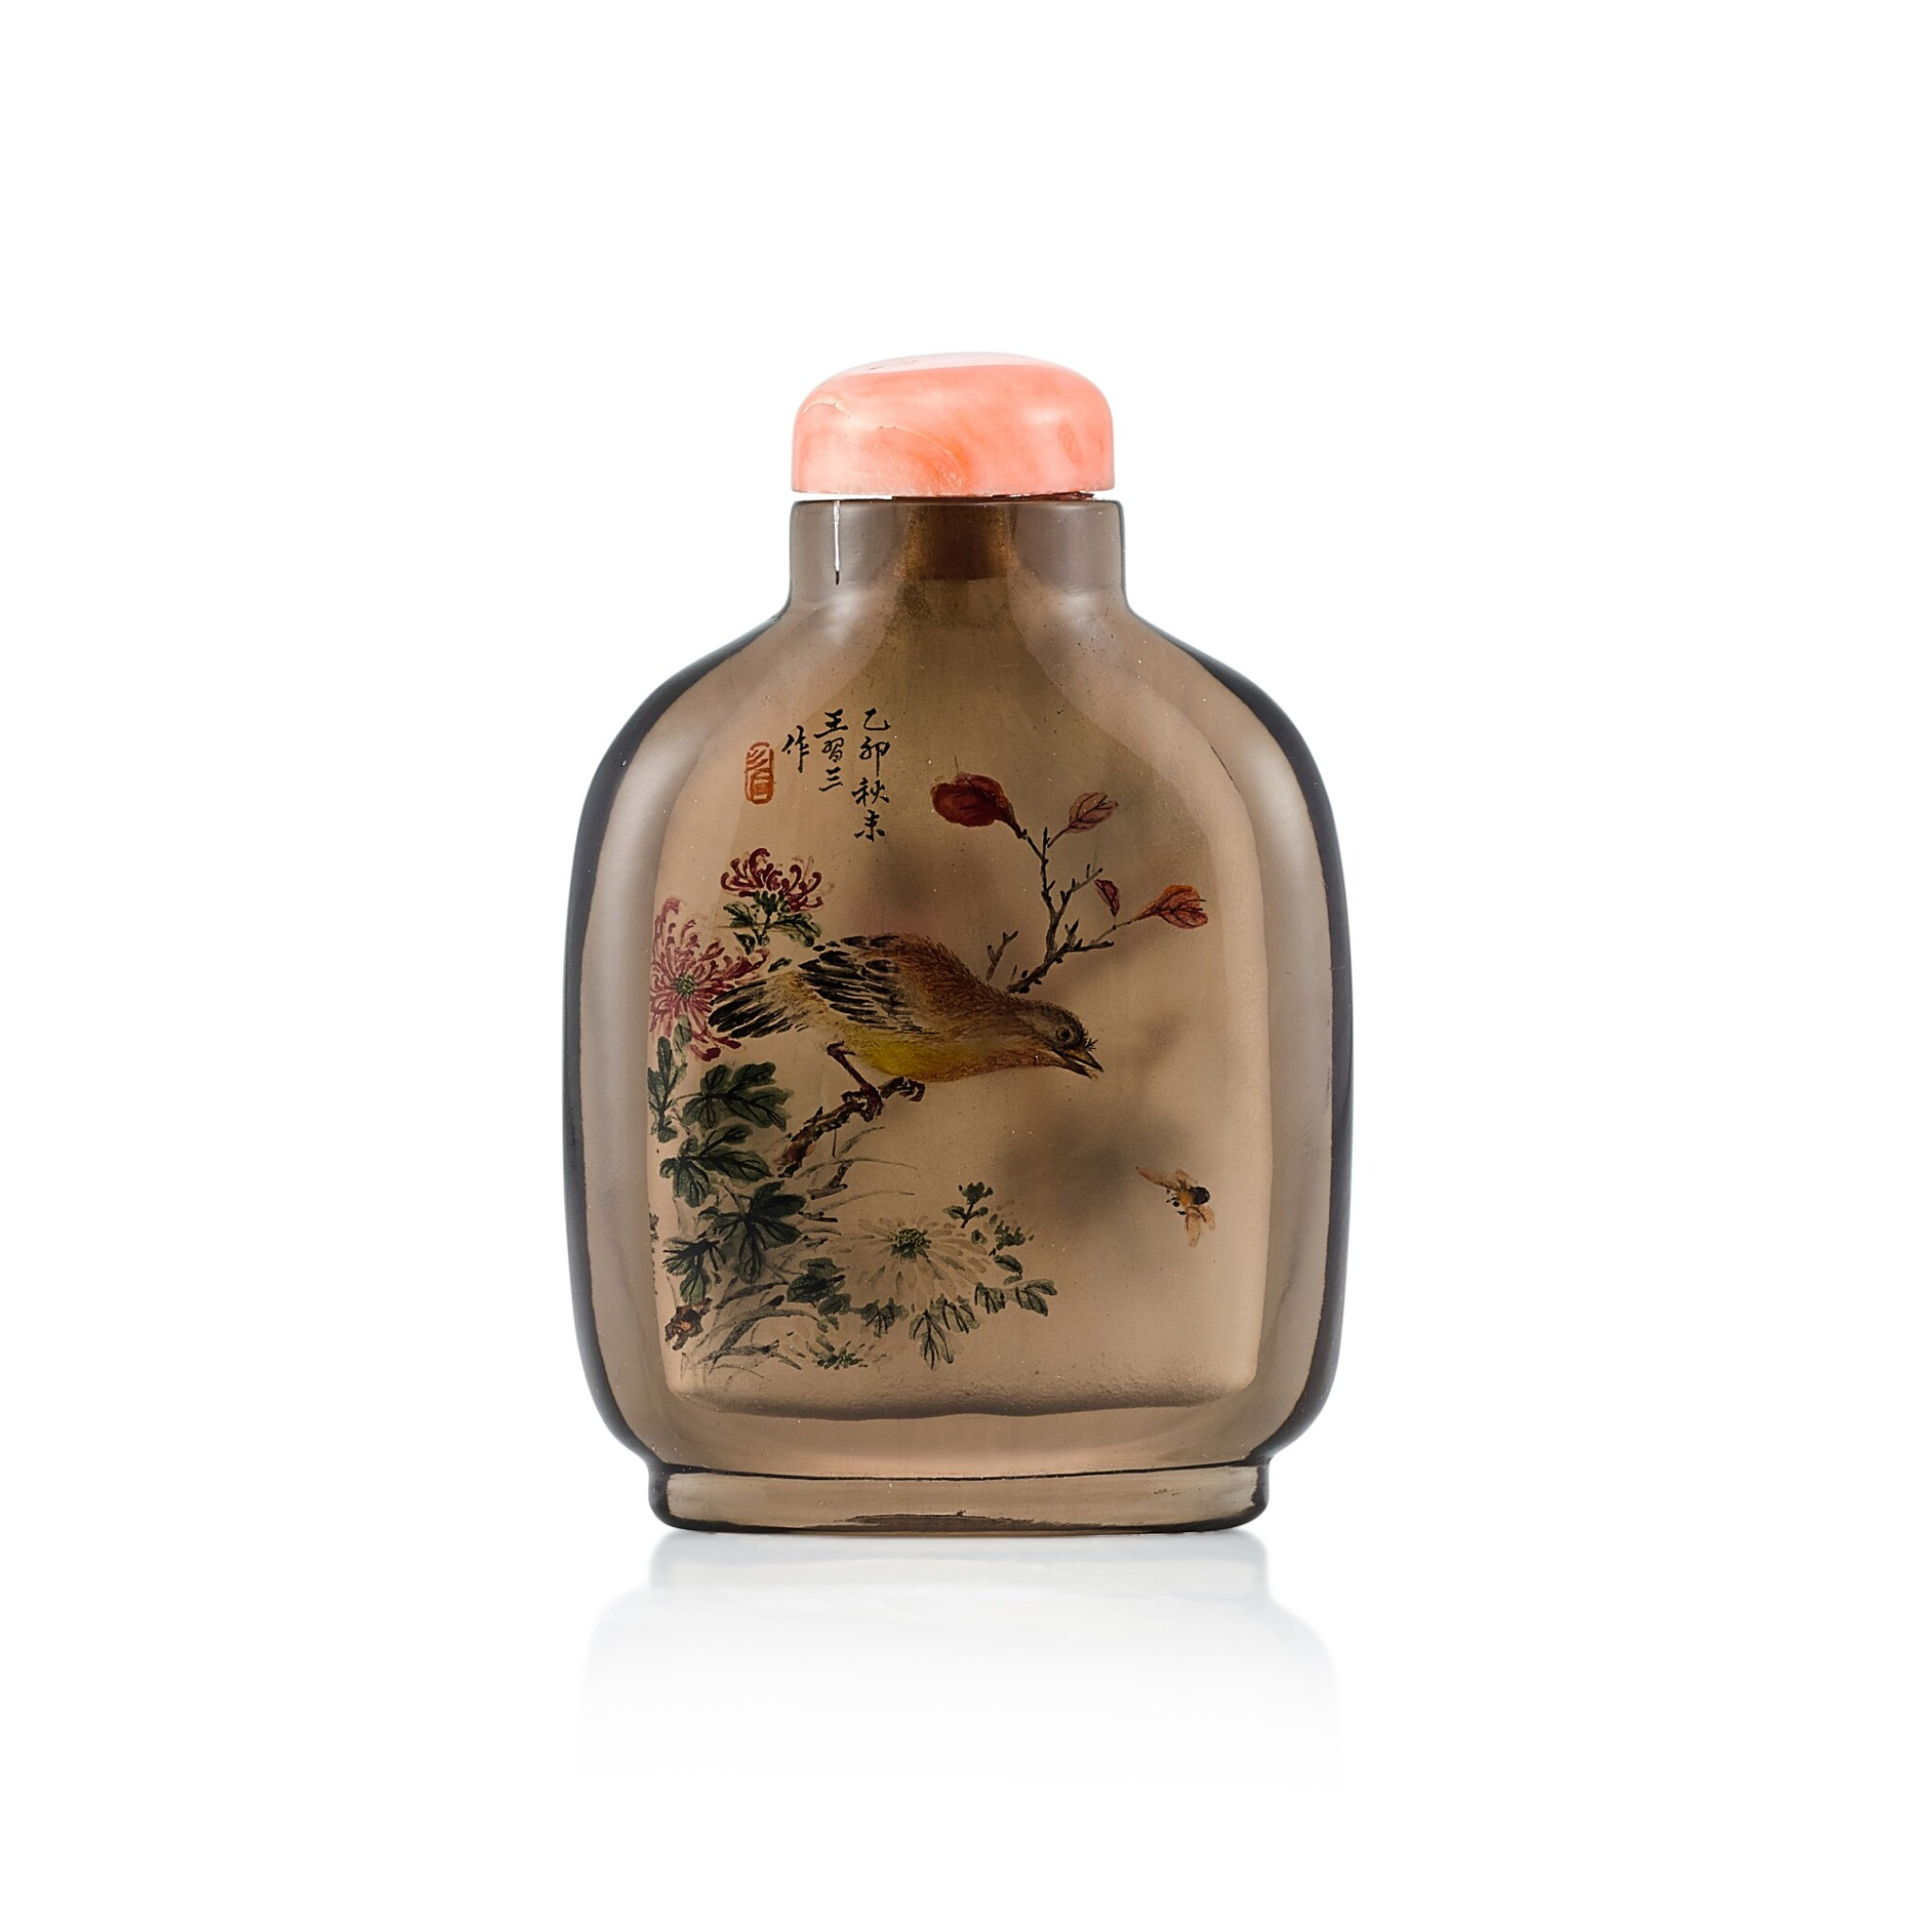 View full screen - View 1 of Lot 3041. An Inside-Painted Rock-Crystal 'Birds and Flowers' Snuff Bottle By Wang Xisan, Dated Yimao Year, Corresponding to 1975 | 丁卯(1975年) 王習三作水晶內畫花鳥圖鼻煙壺 《丁卯秋末王習三作》款.